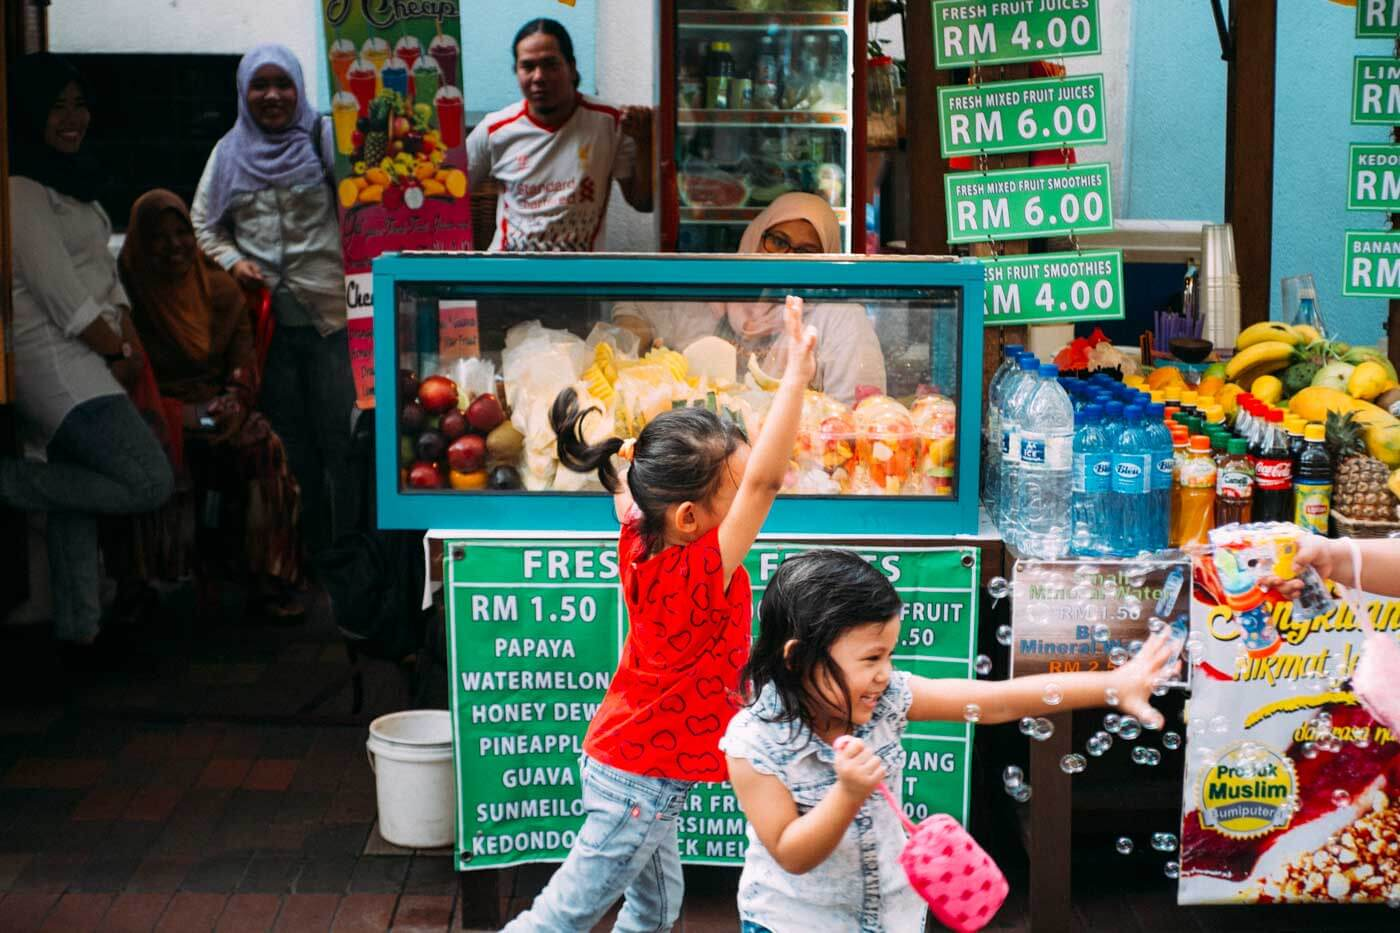 travel-kuala-lumpur-malaysia-2015-fujifilm-xe1-ms-optical-optics-super-perar-35mm-f3.5-3.5-street-snap-portfolio-blog-happy-kids-bubble-gun-playing